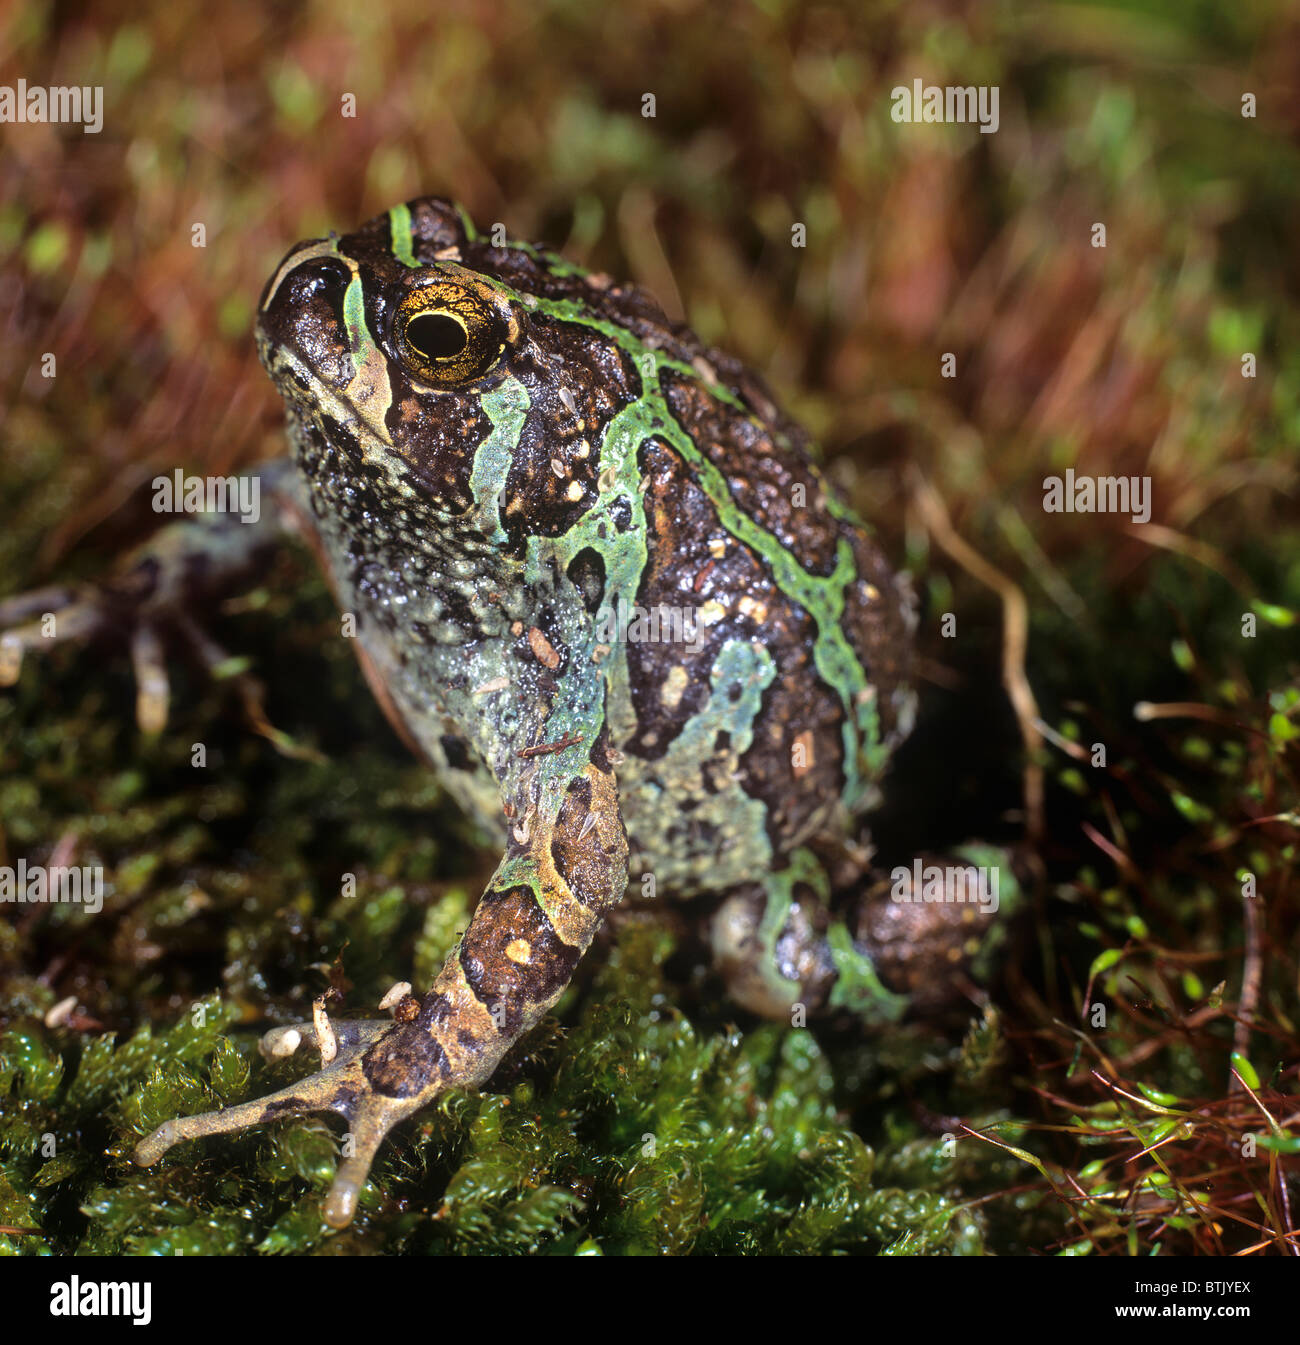 Green Burrowing Frog, Marbled Rain Frog (Scaphiophryne marmorata) on moss. A nocturnal Madagasy frog. - Stock Image